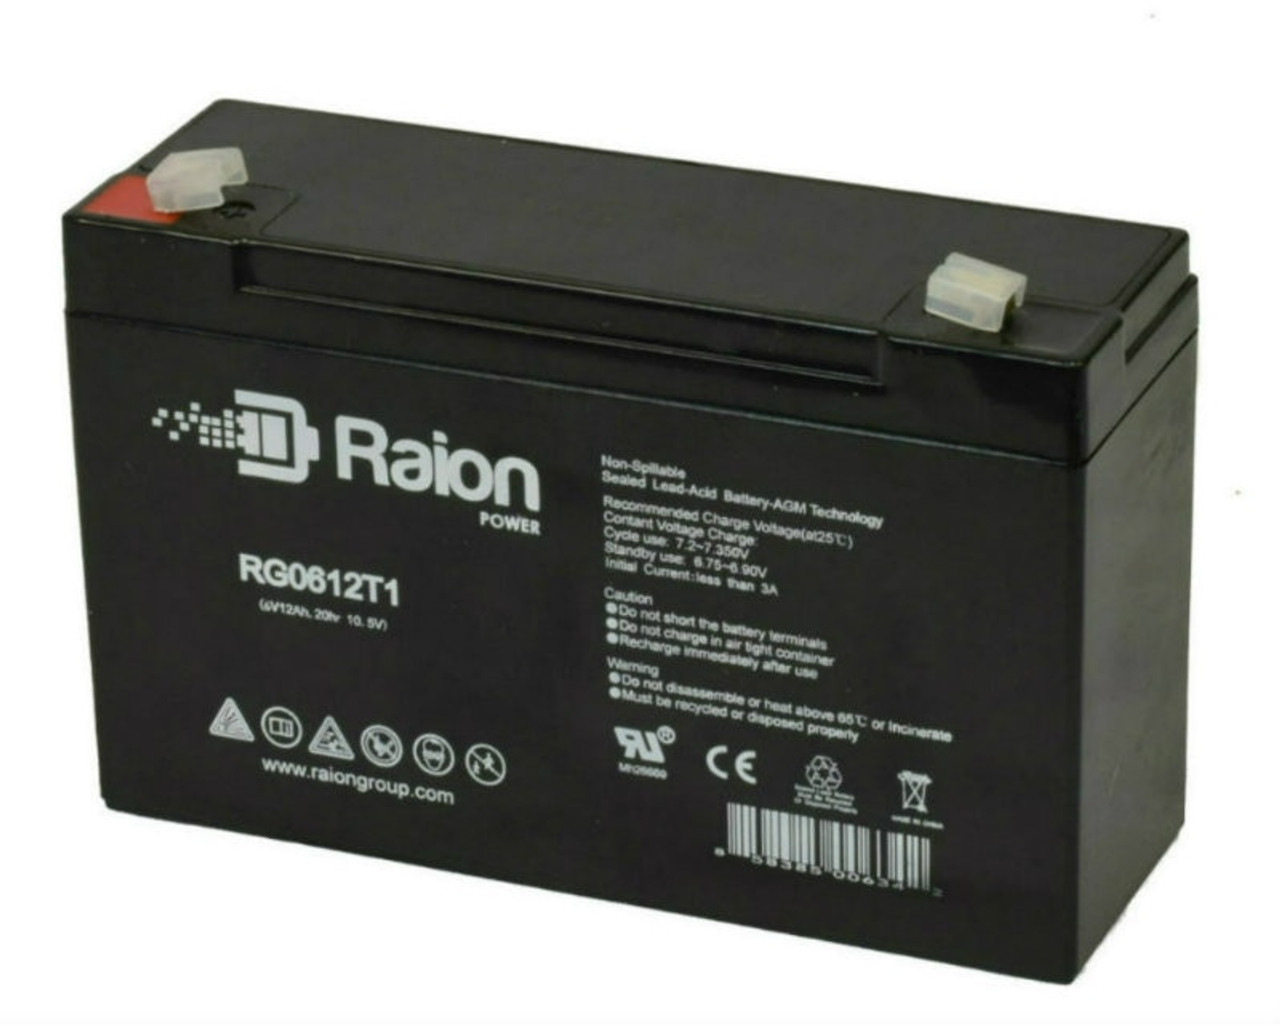 Raion Power RG06120T1 Replacement Battery Pack for Edwards 1631 emergency light